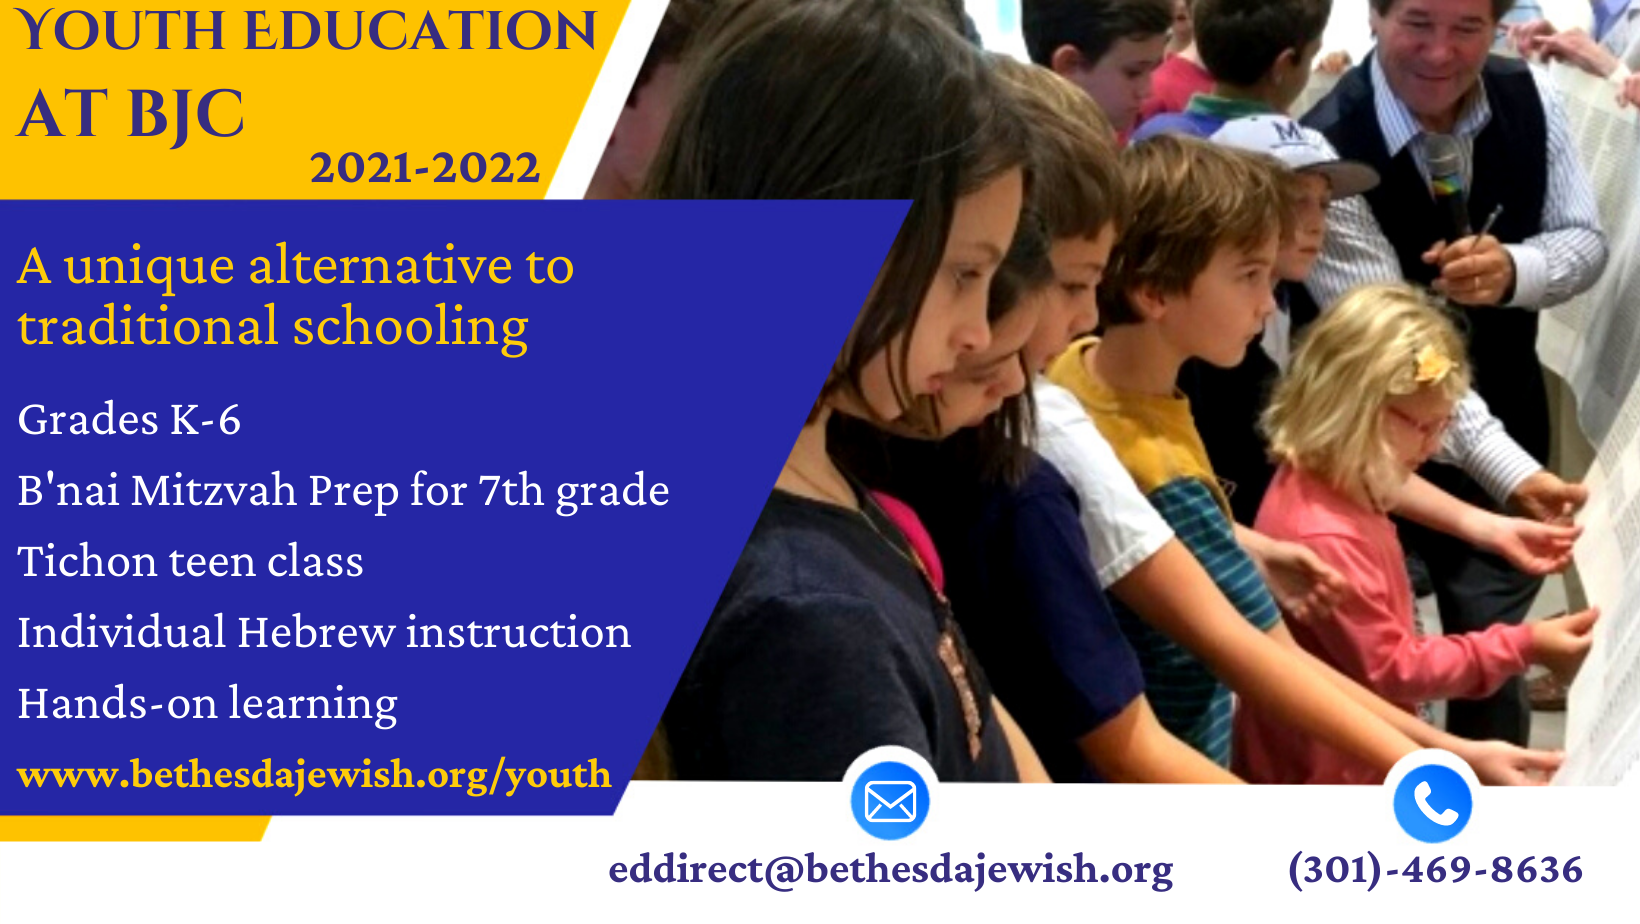 """<a href=""""https://www.bethesdajewish.org/form/youth-education-registration.html""""                                     target=""""_blank"""">                                                                 <span class=""""slider_title"""">                                     BJC Youth Education is now open for Registration!                                </span>                                                                 </a>                                                                                                                                                                                       <span class=""""slider_description"""">Led by our warm and dedicated staff, BJC's program includes activity based learning and one-on-one Hebrew lessons. Synagogue membership is included in school tuition for new families.  With a program built for parents with busy schedules, and using a hands-on approach, BJC provides a Jewish education in a fun and engaging way.  Classes begin in October.</span>"""